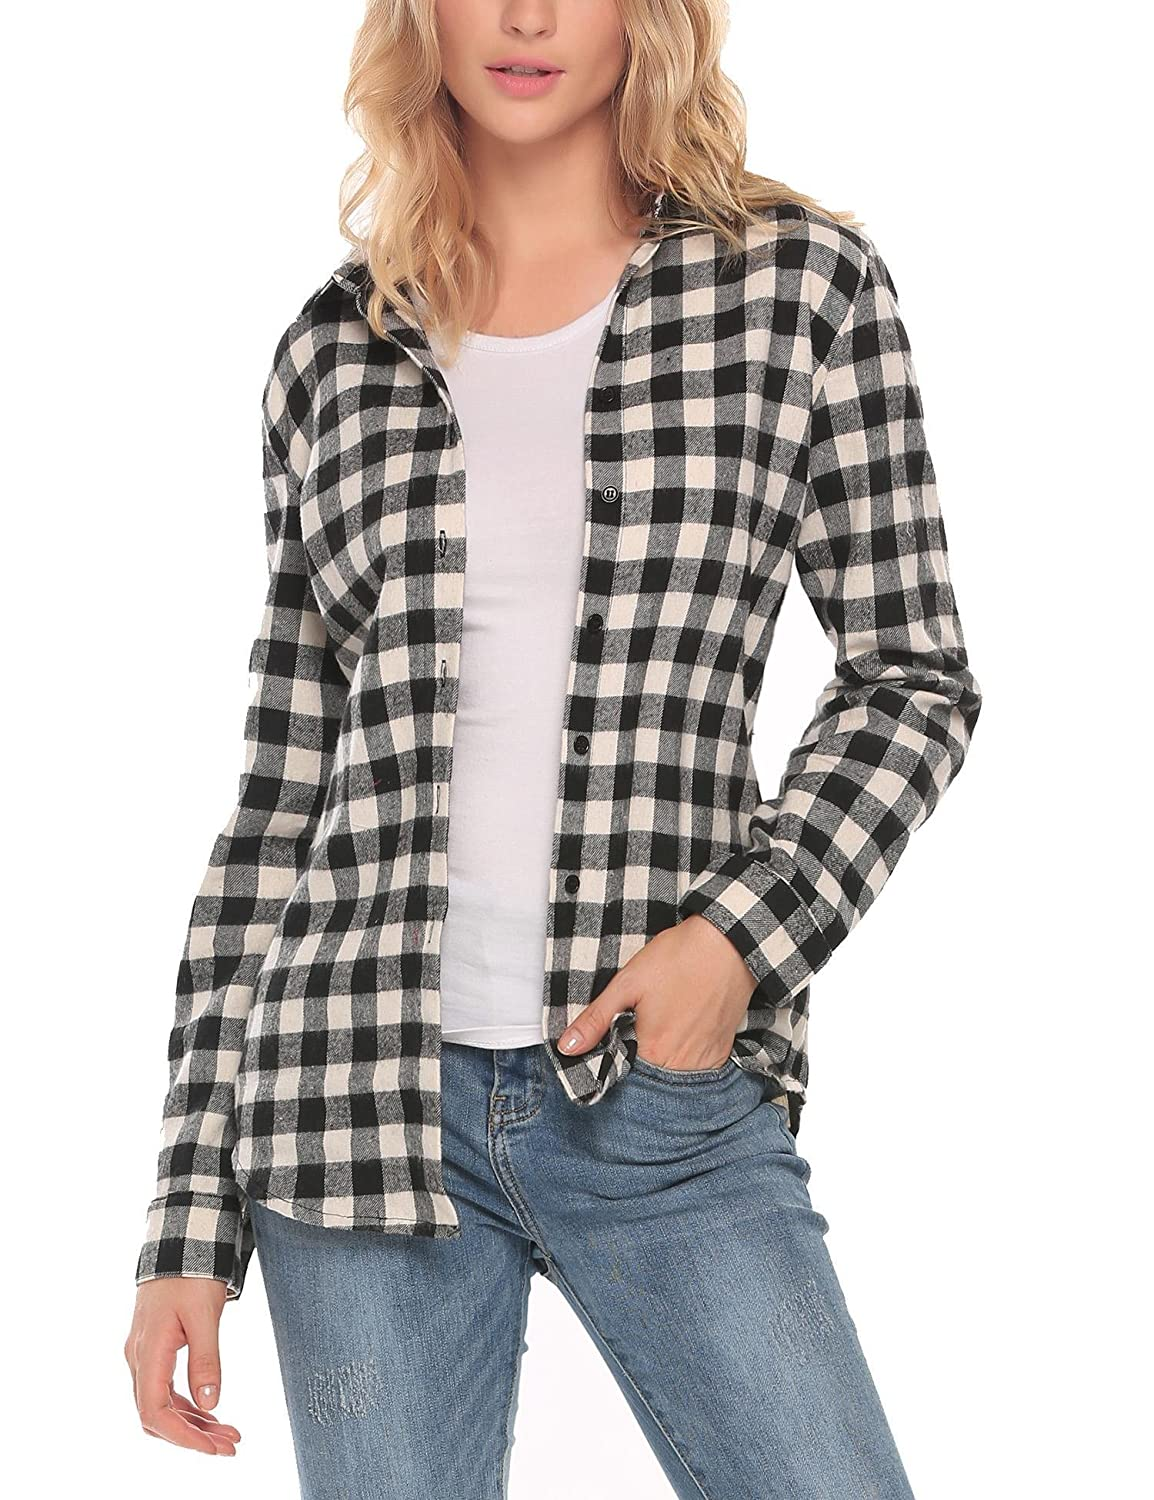 bbfa1c04 The Plaid Flannel Shirt Features: Turn-down collar, Long sleeve, Plaid  pattern, Button down shirt; Wrinkle-resistant, Button up ...